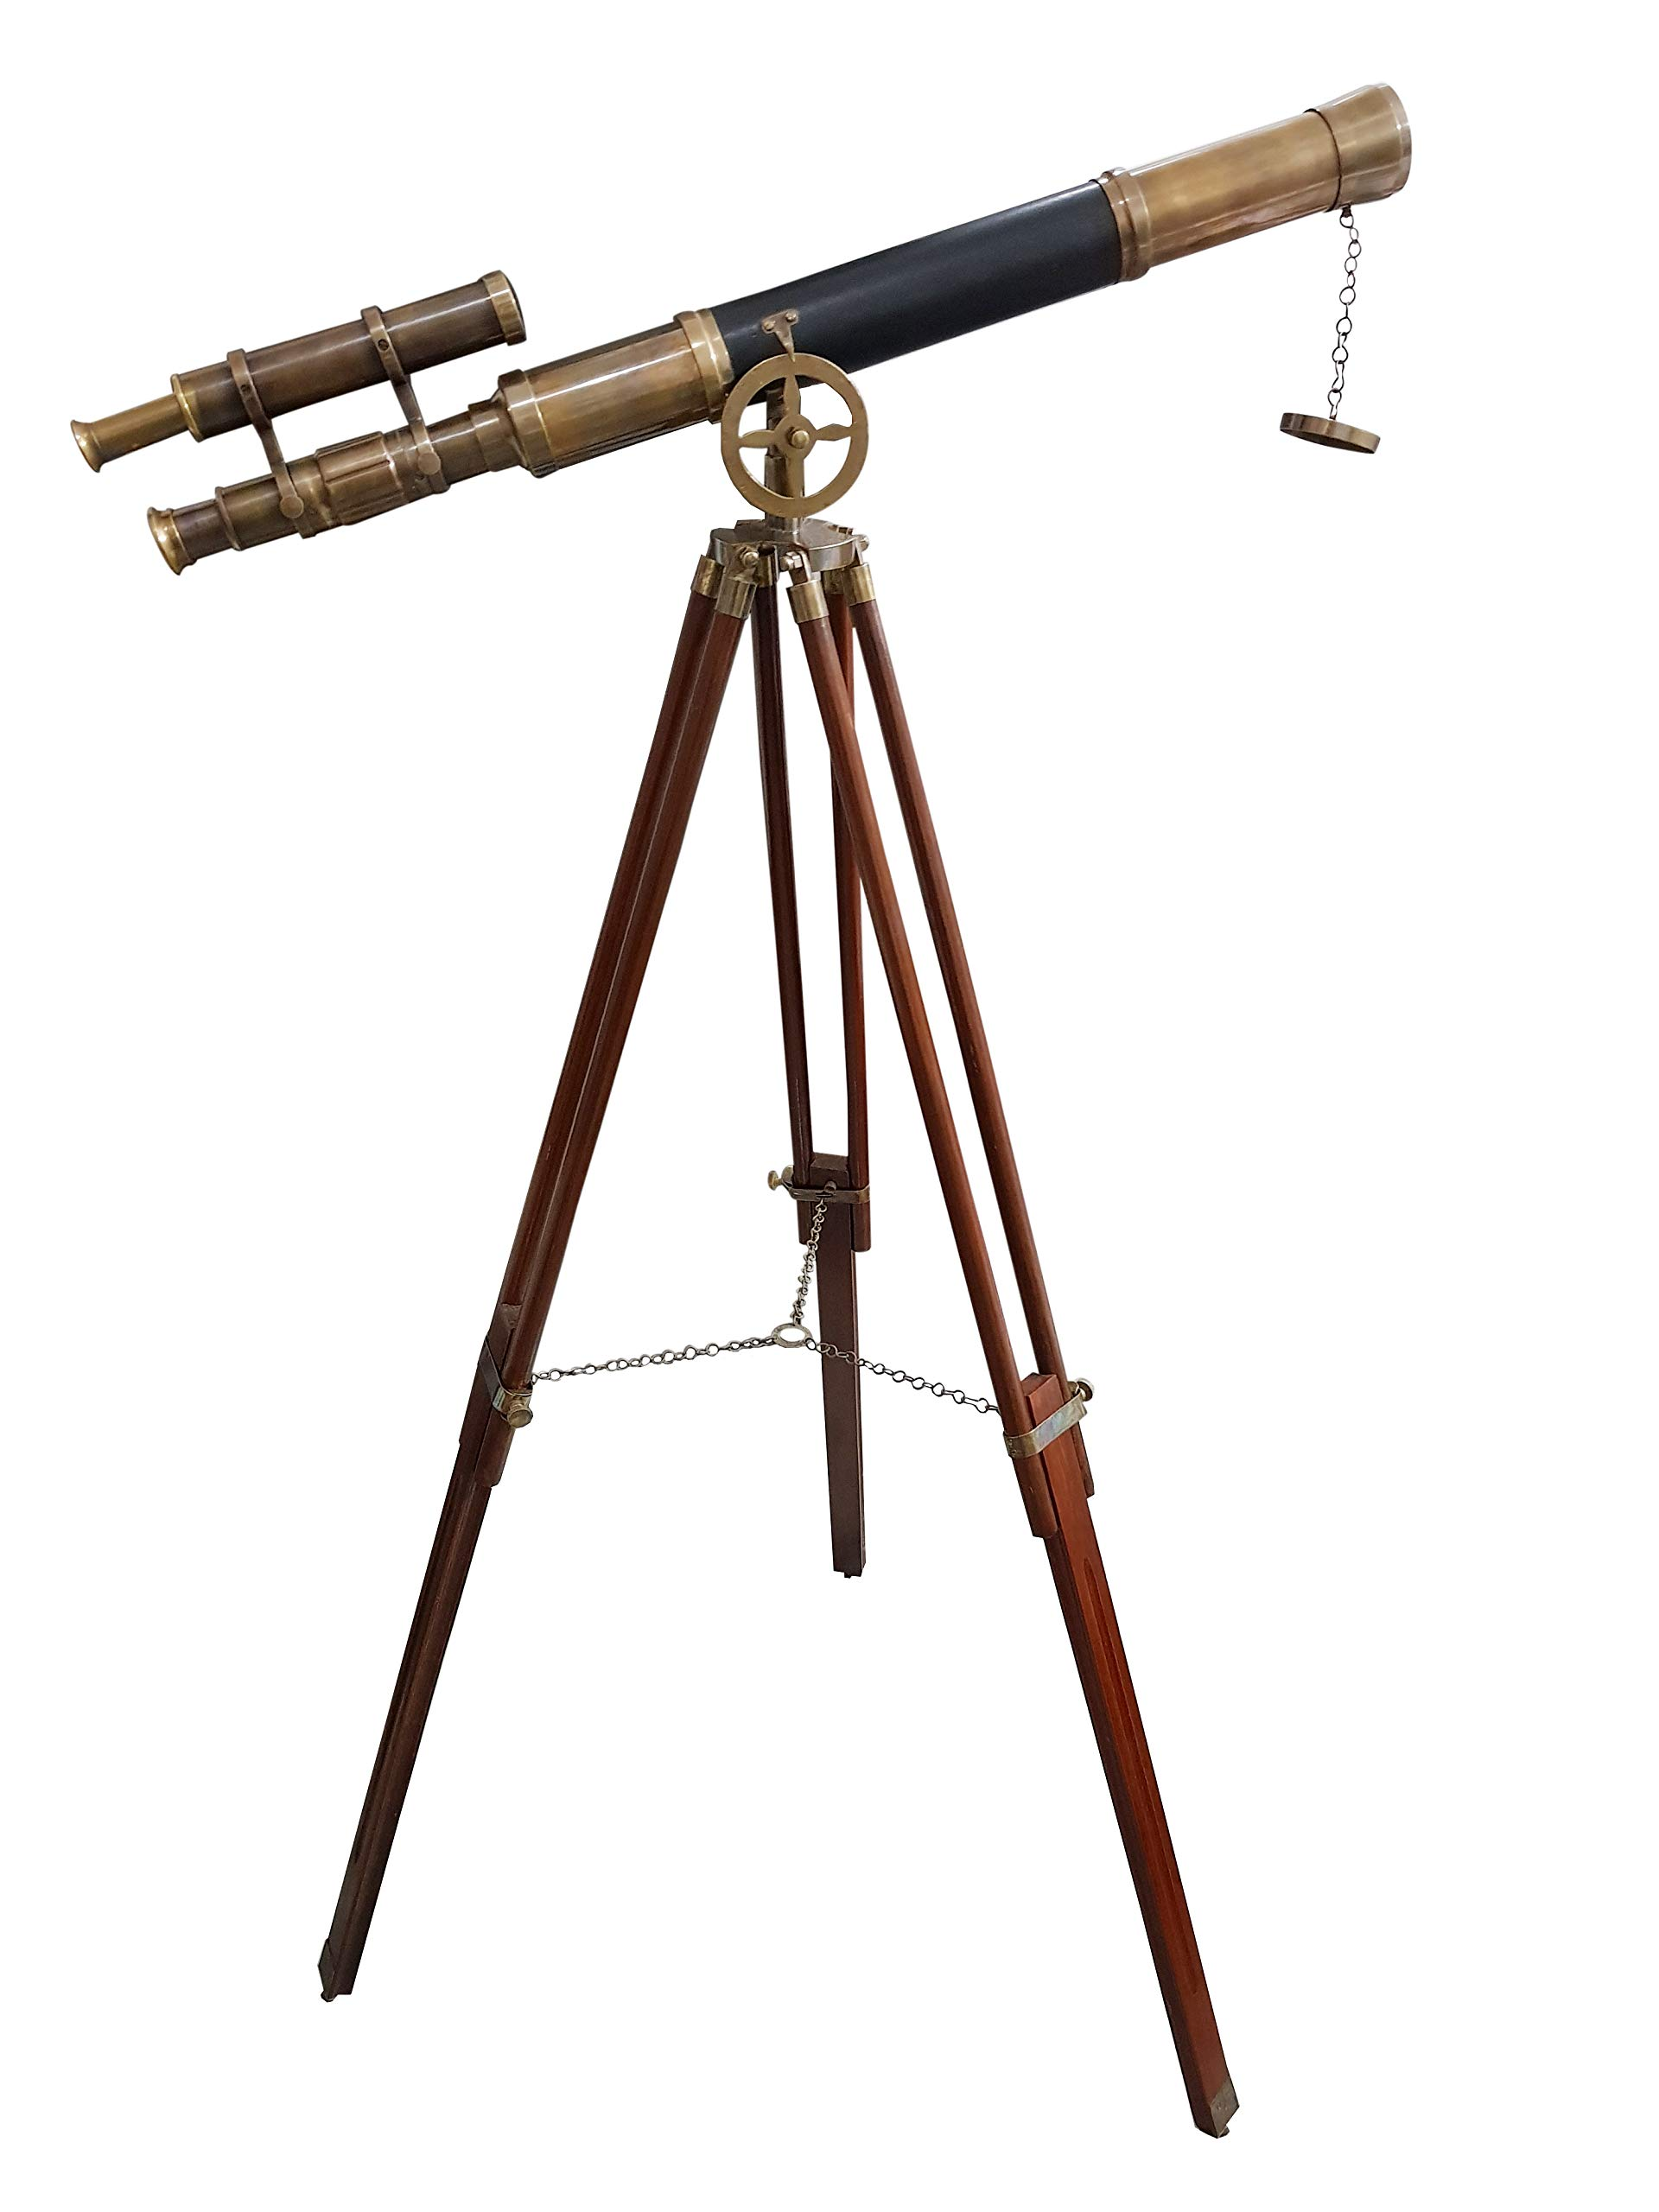 Maritime Brass Antique Double Barrel Designer Telescope with Wooden Tripod Floor Standing Telescopic tripods - collectiblesBuy by Collectibles Buy